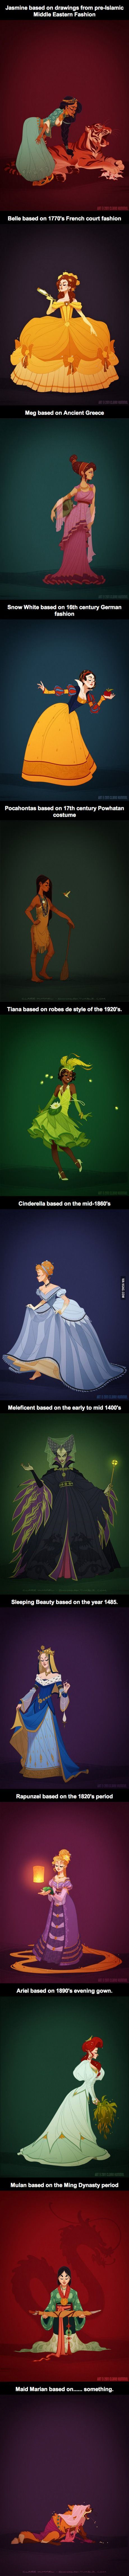 Disney Princesses Based on Historical Period Fashion